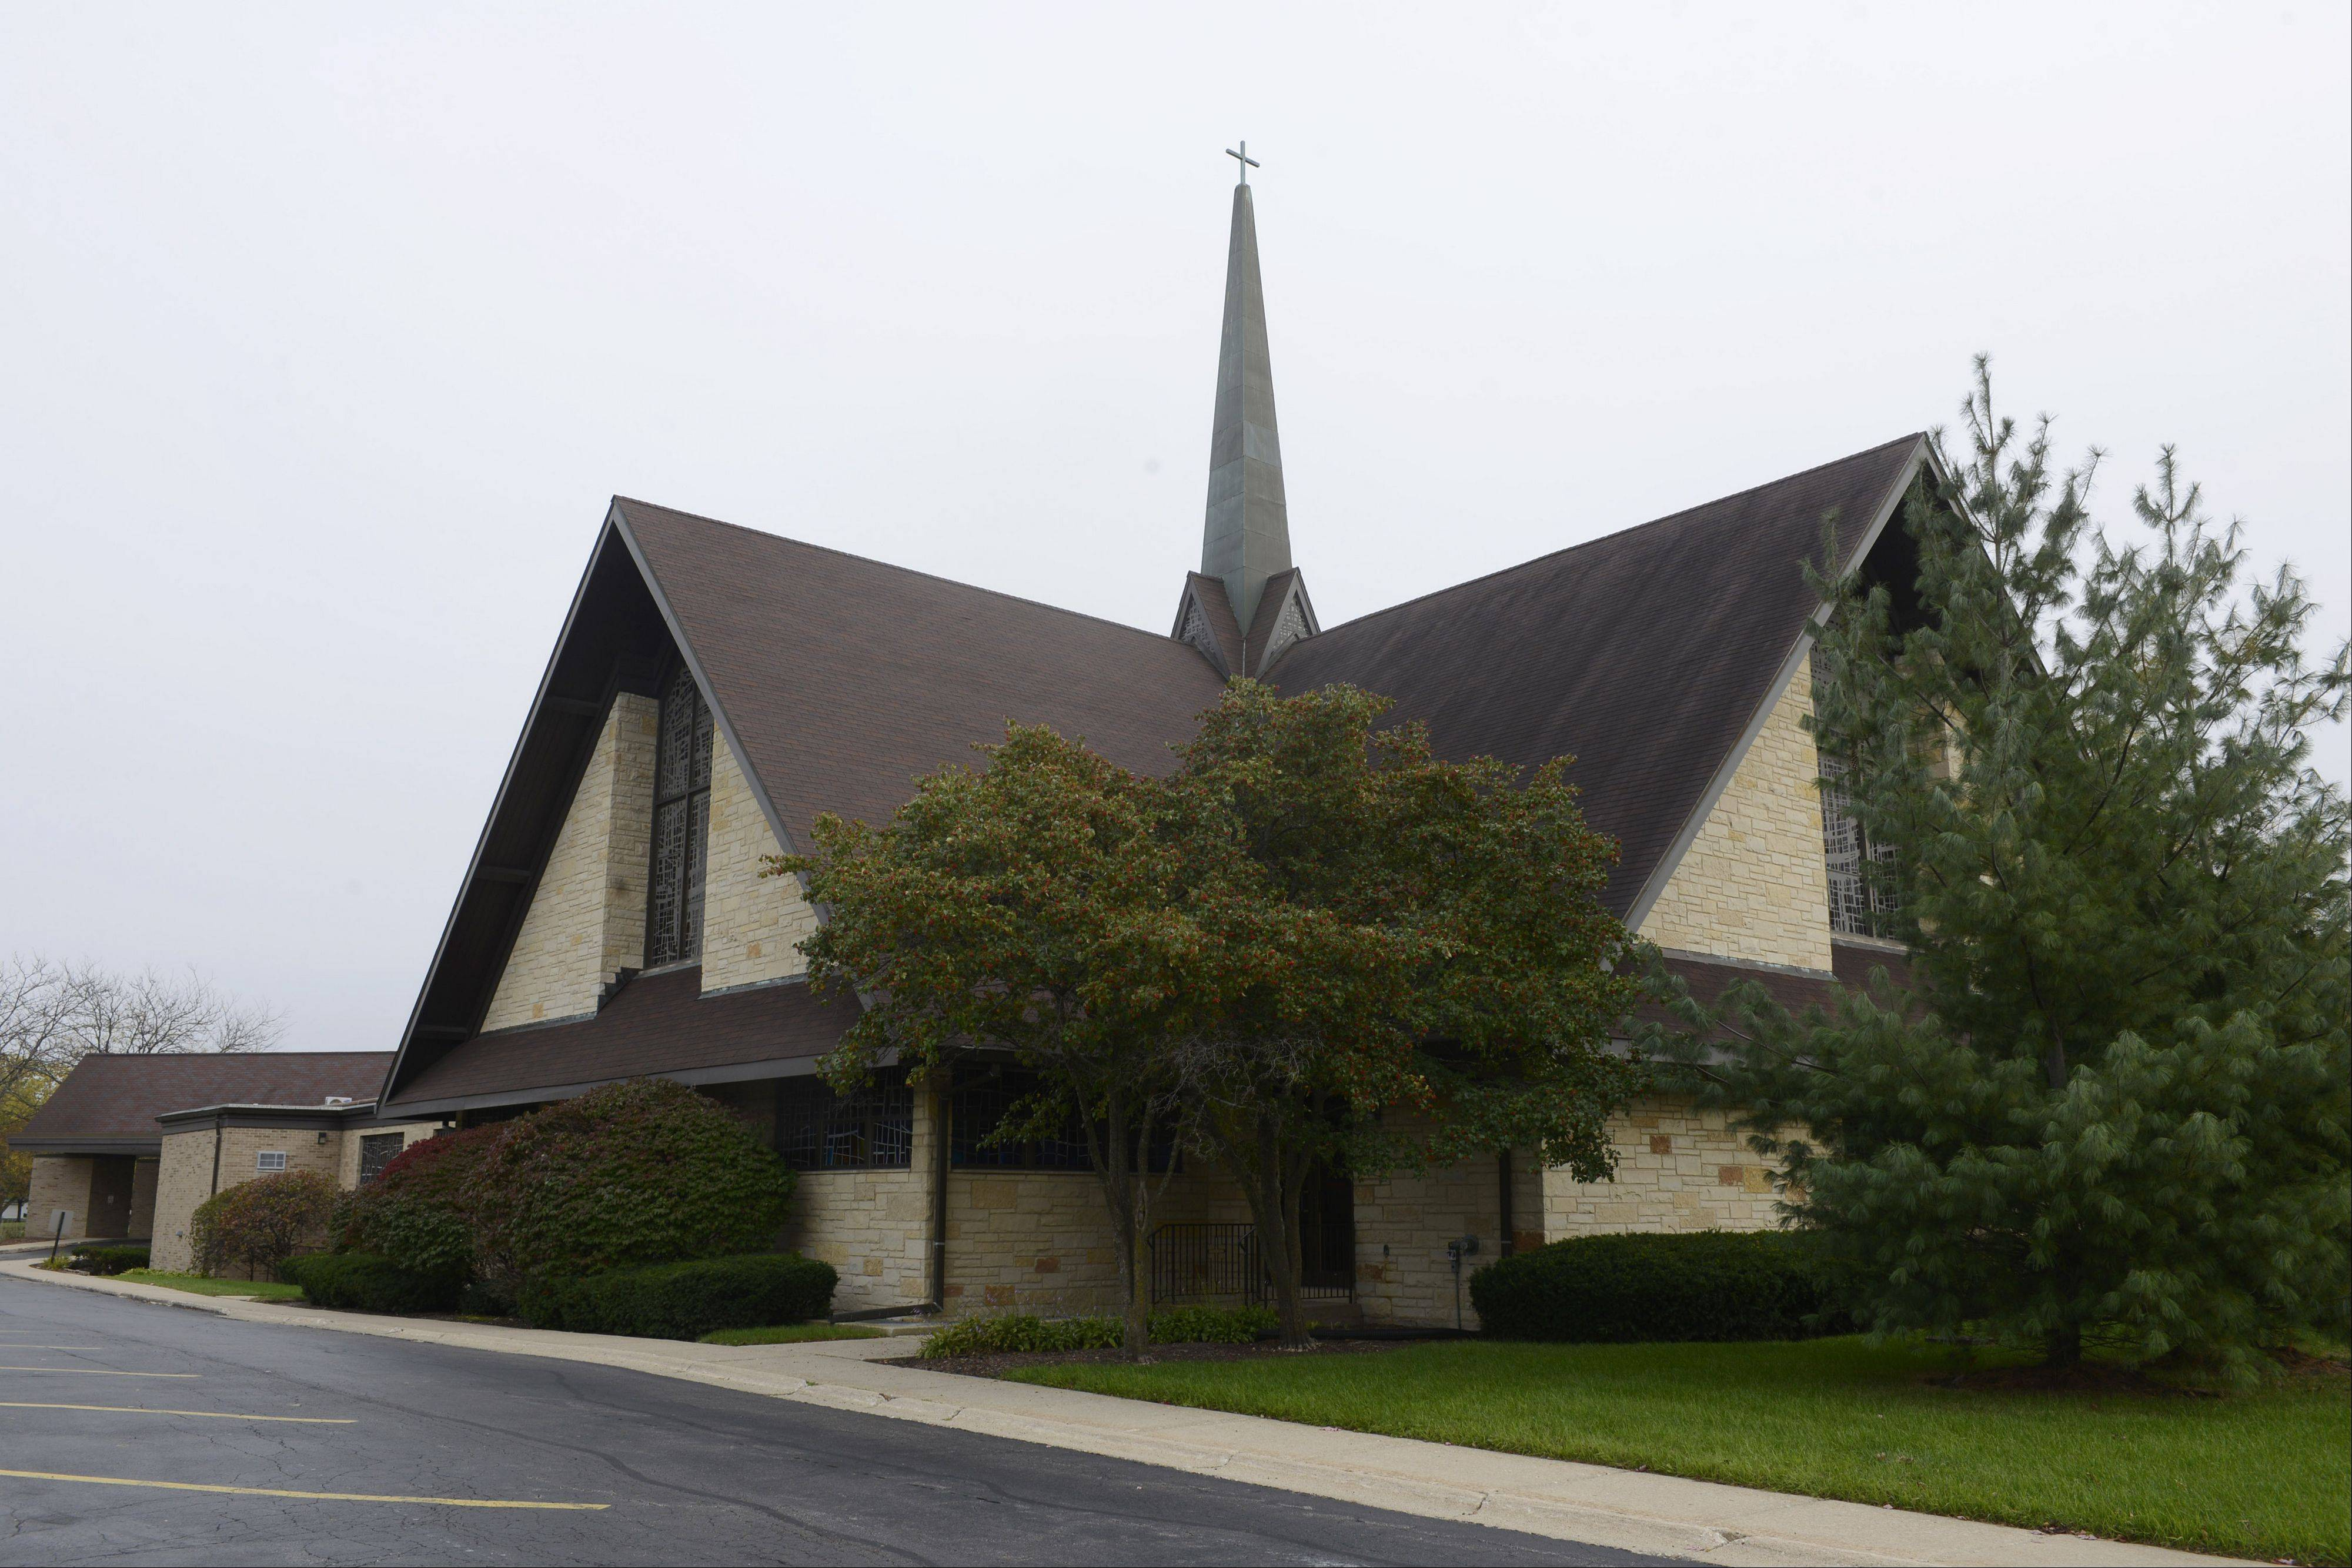 JOE LEWNARD/jlewnard@dailyherald.com Orchard Evangelical Free Church is dropping its controversial plan to tear down eight homes in its Arlington Heights neighborhood to make room for additional parking. Church leaders made the decision after a meeting Sunday night.